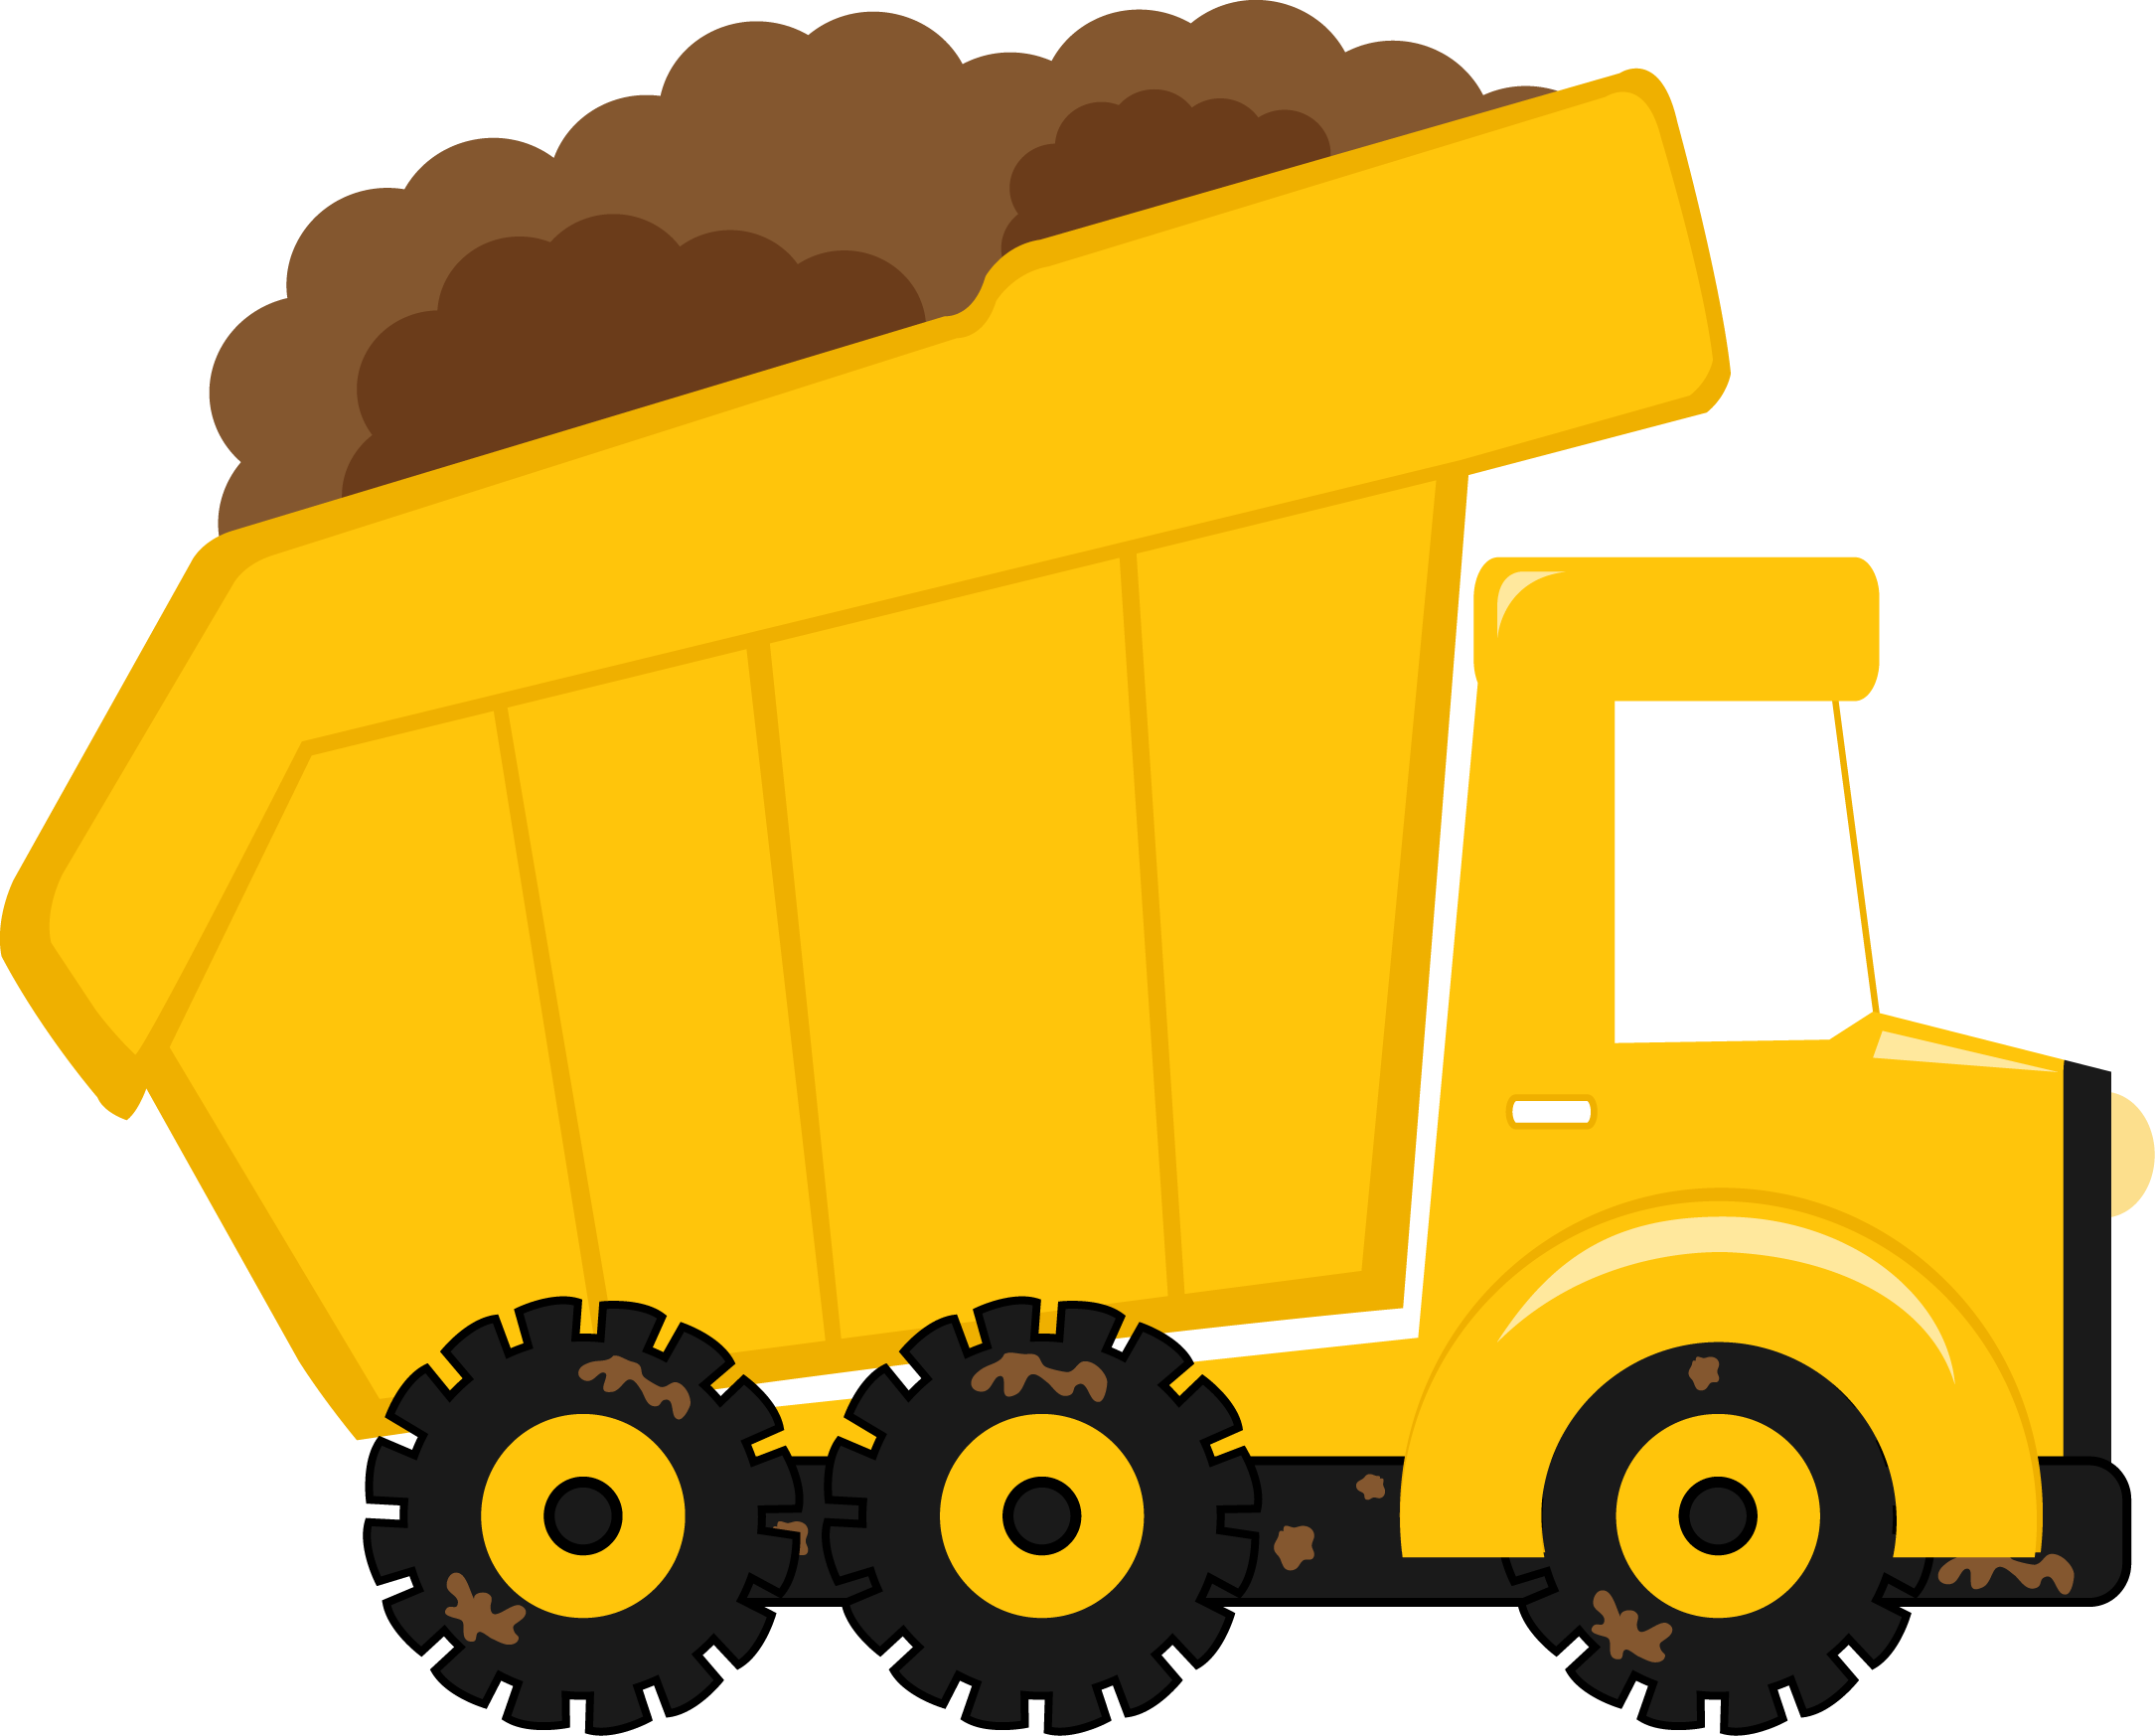 Cat dump truck clipart image free download Photo by @daniellemoraesfalcao - Minus | Transport | Pinterest ... image free download